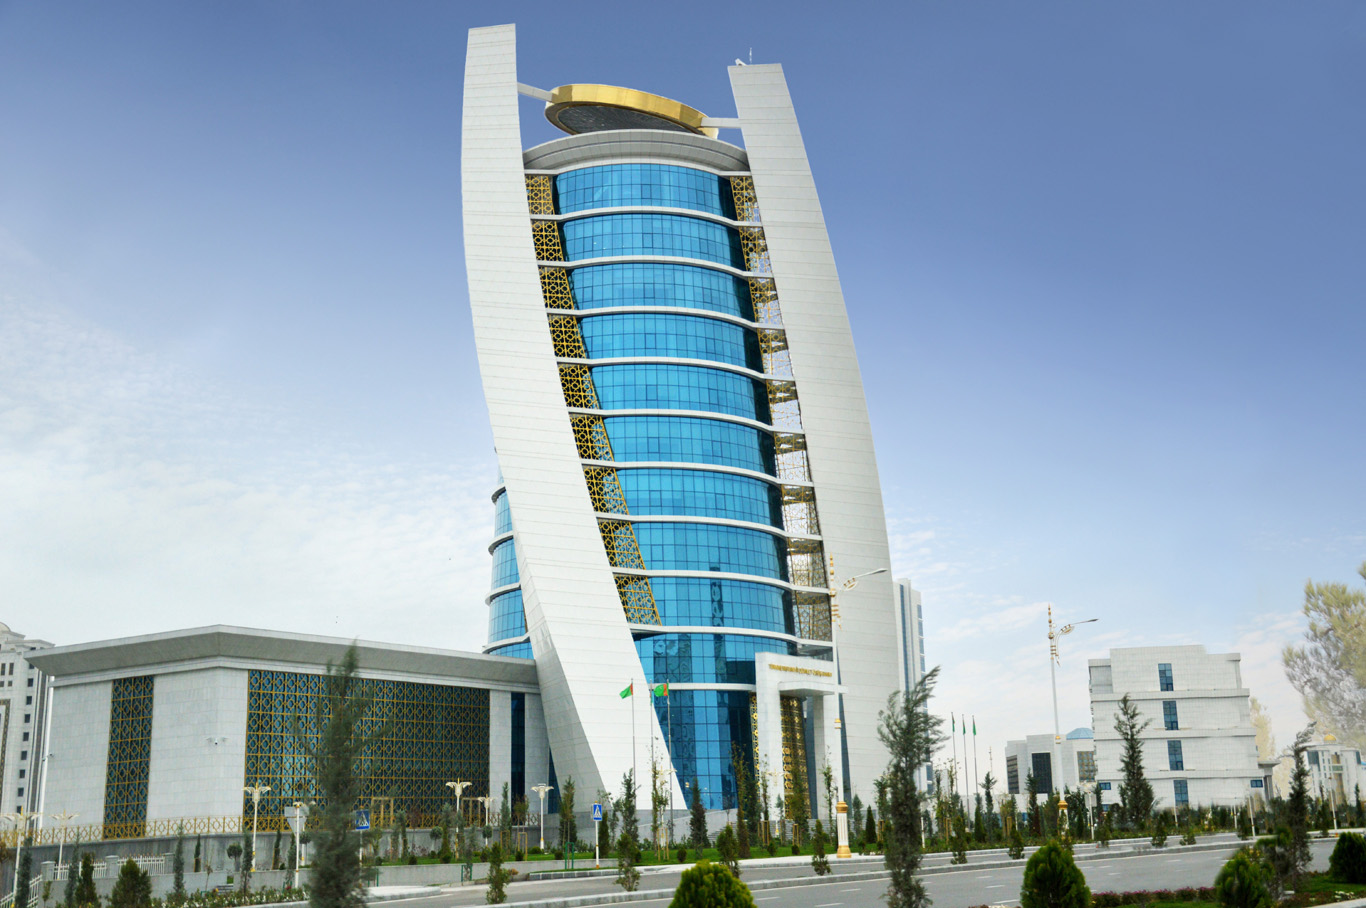 Bank of Turkmenistan - 1 manat coin on top of the building